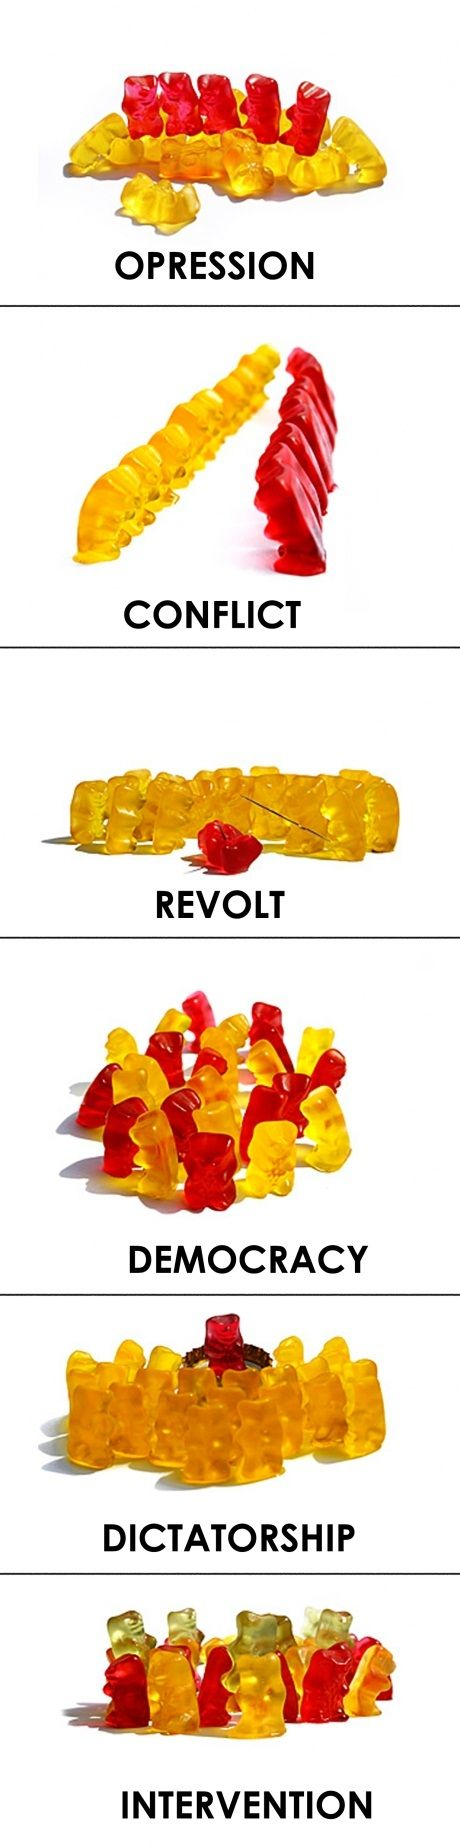 Teaching government systems with gummy bears